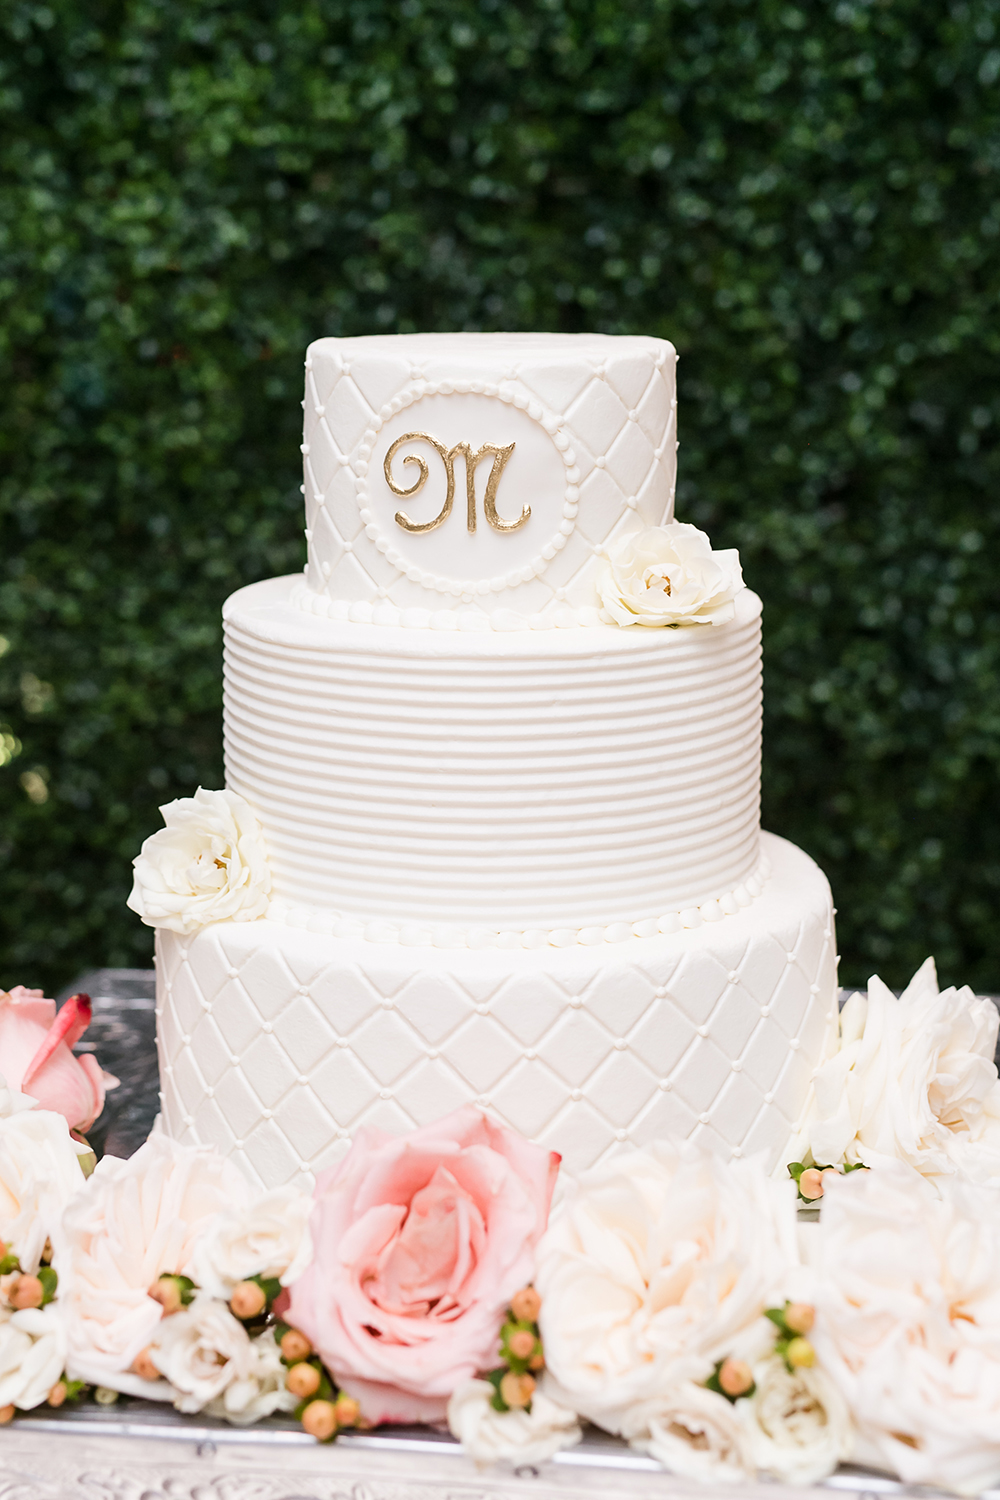 white and gold wedding cake by houston baker susie's cakes and confections